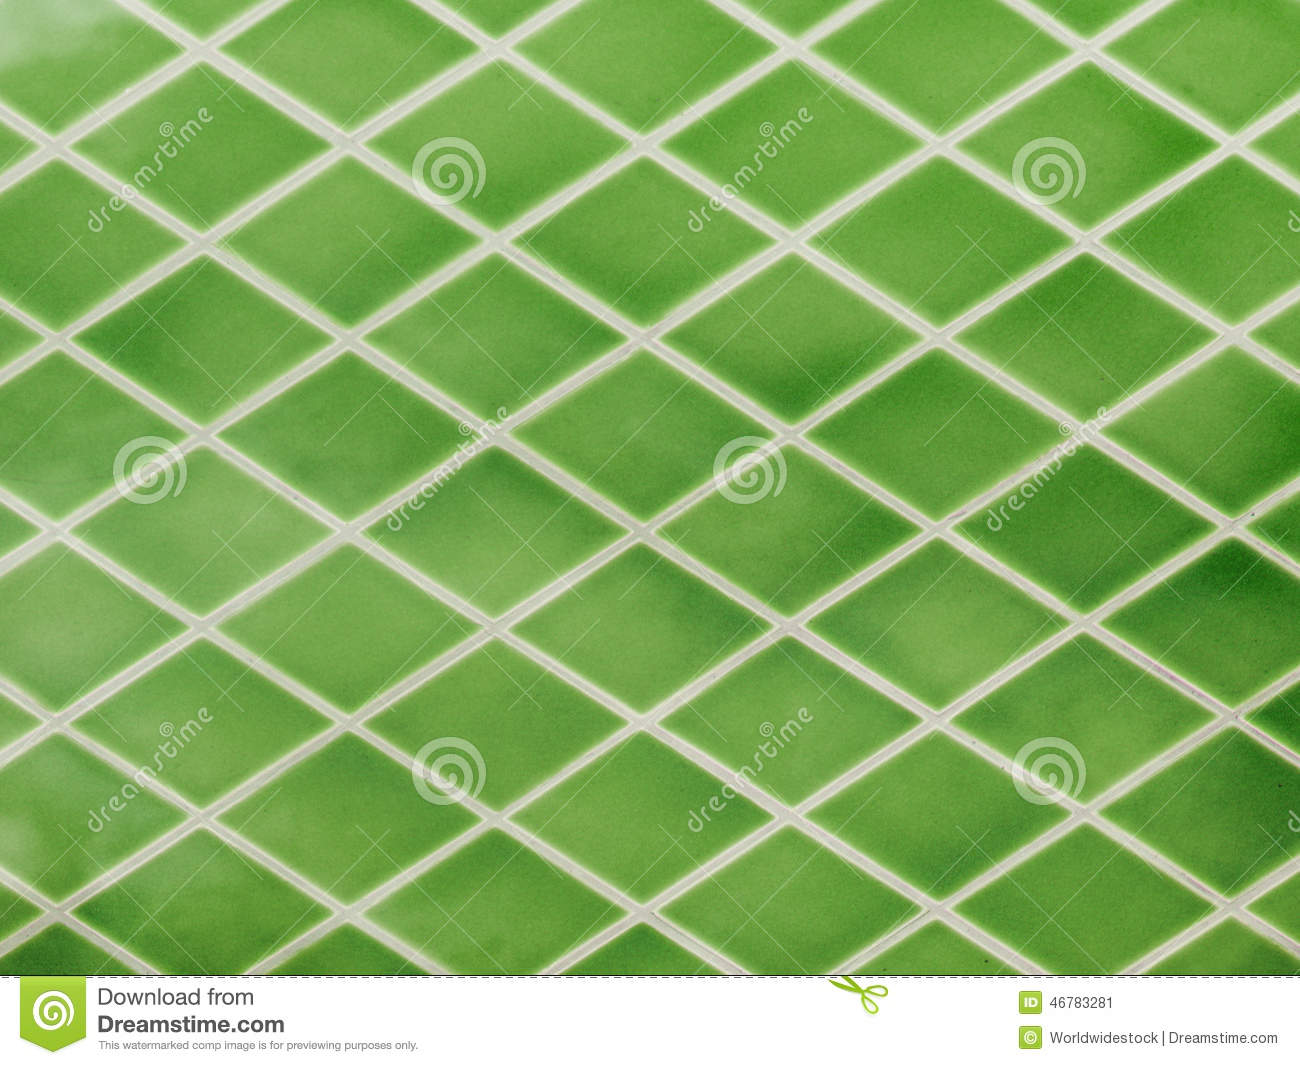 Green Ceramic Tiles Stock Illustration Image 46783281